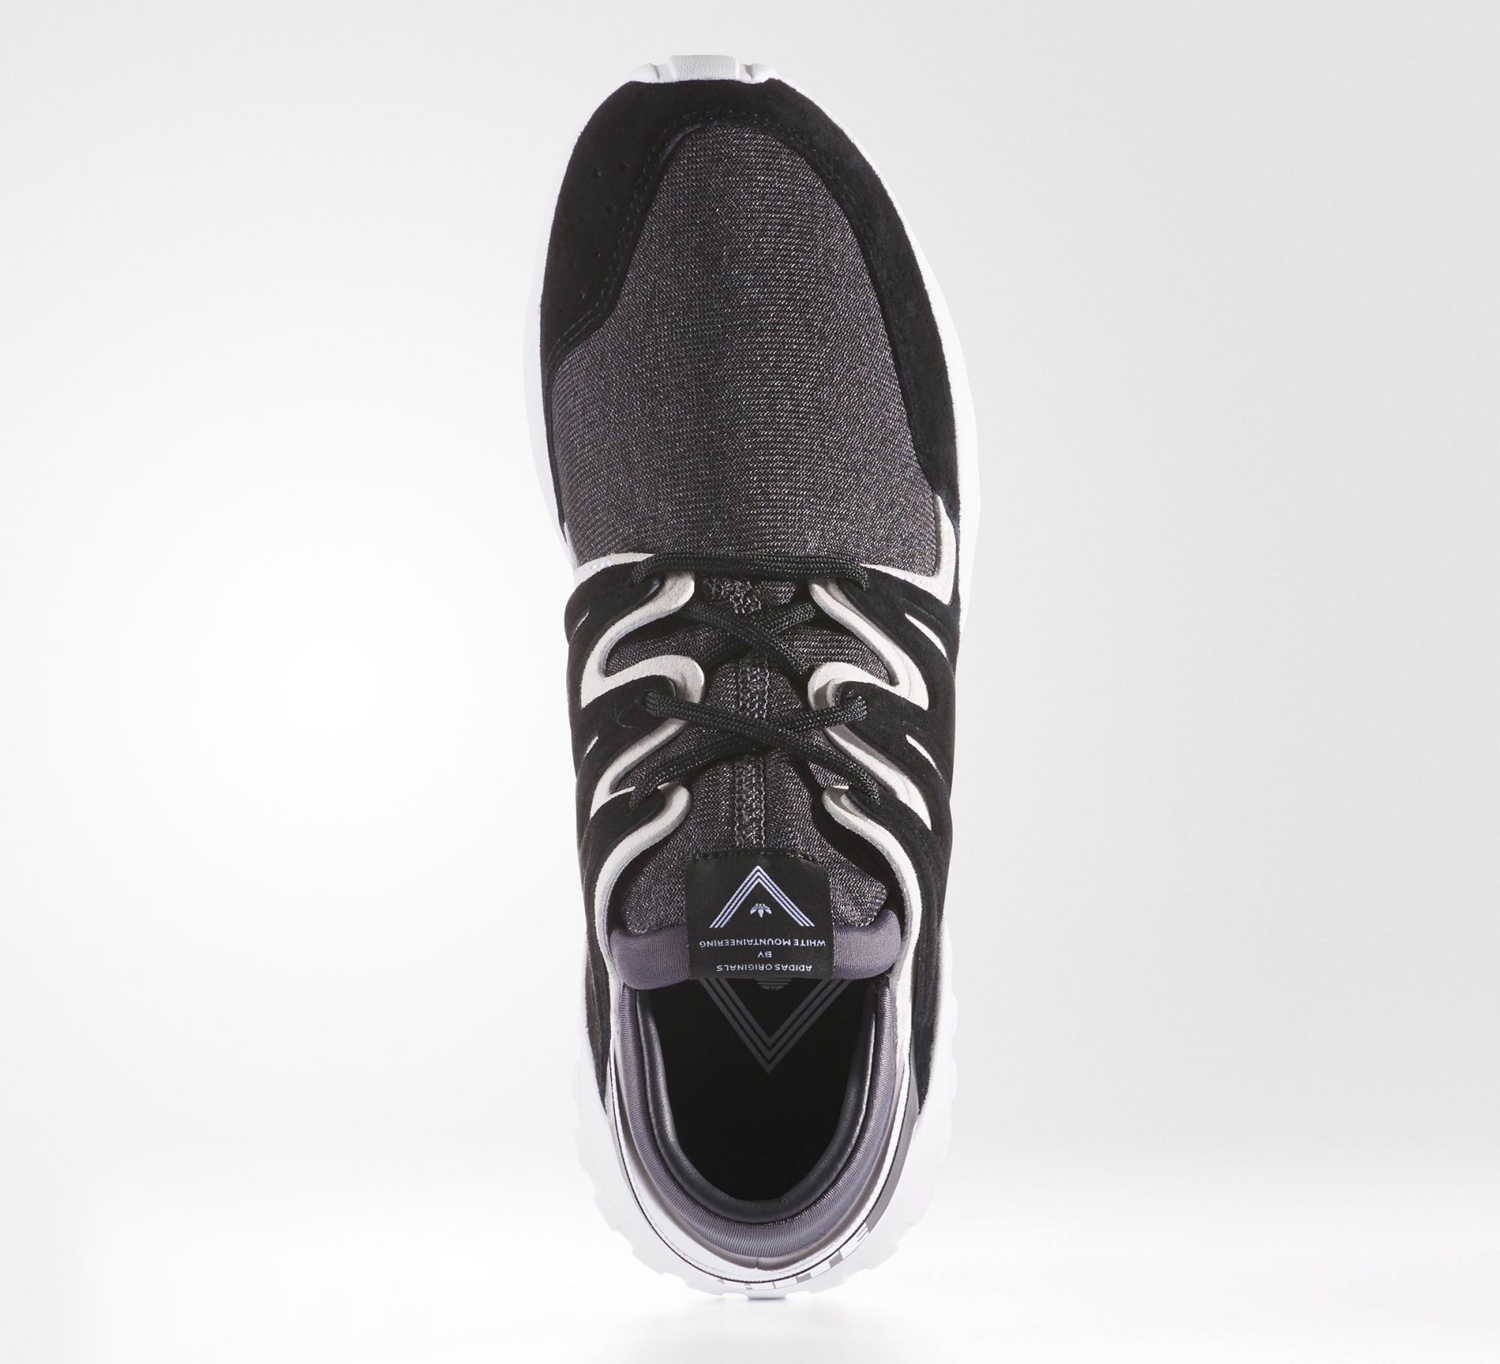 Adidas Tubular Nova White Mountaineering Night Cargo